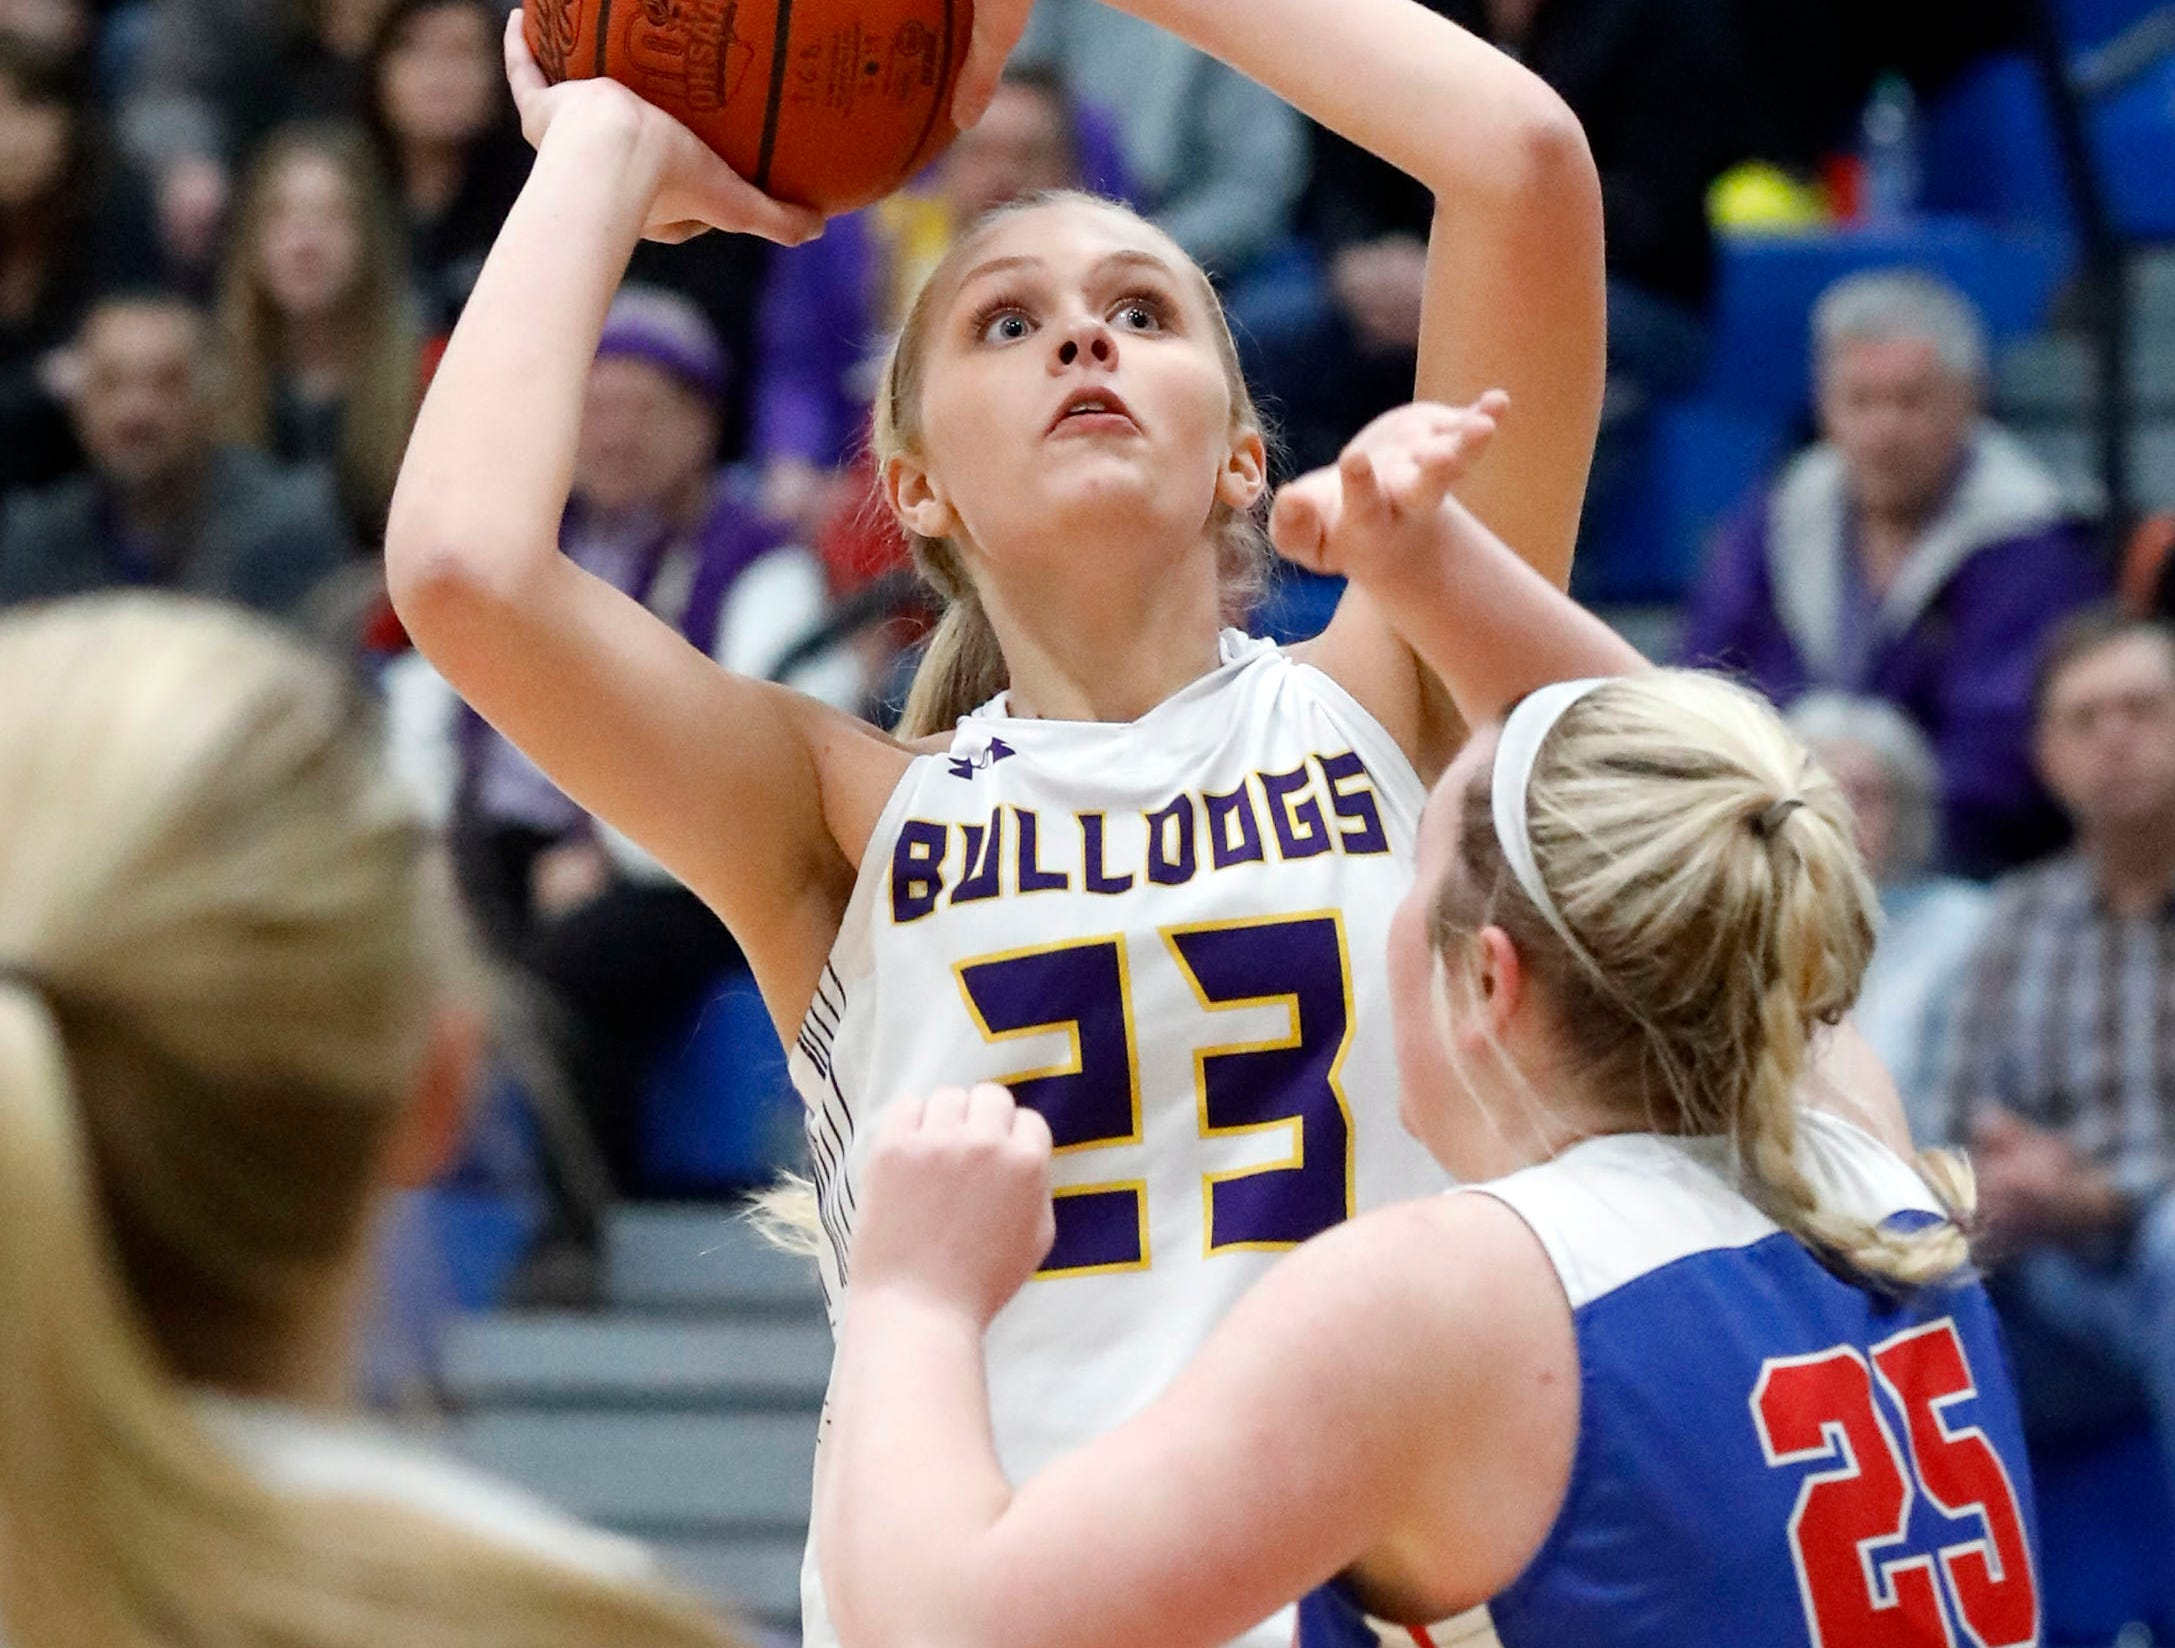 Bloom-Carroll's McKenzie Powers takes a host during Tuesday night's game, March 5, 2019, at Springfield High School in Springfield. The Bulldogs lost the game to Carroll 46-30.